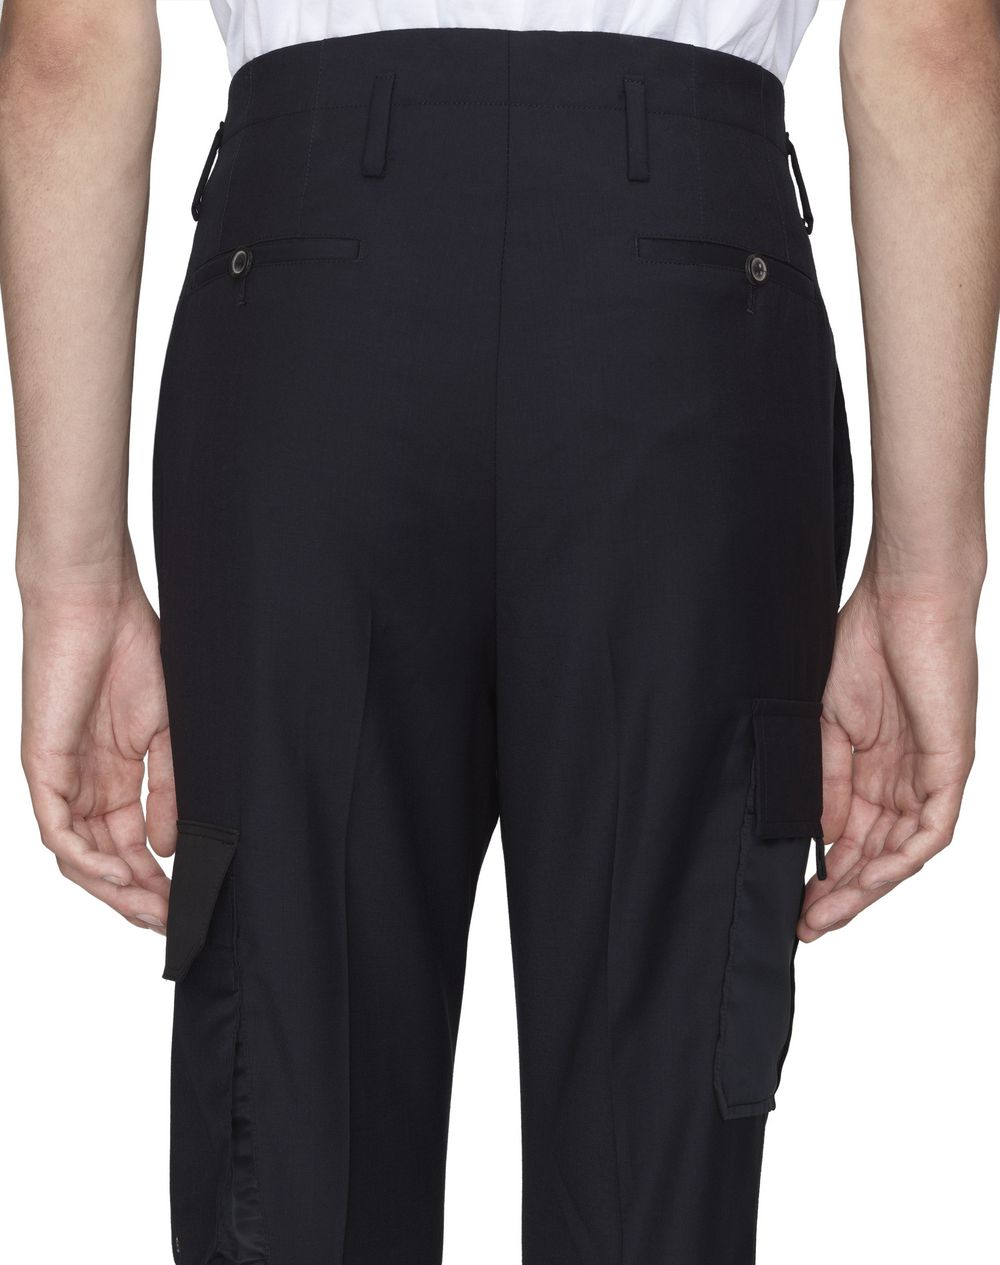 BLACK STRAIGHT-LEG TROUSERS WITH POCKETS - Lanvin